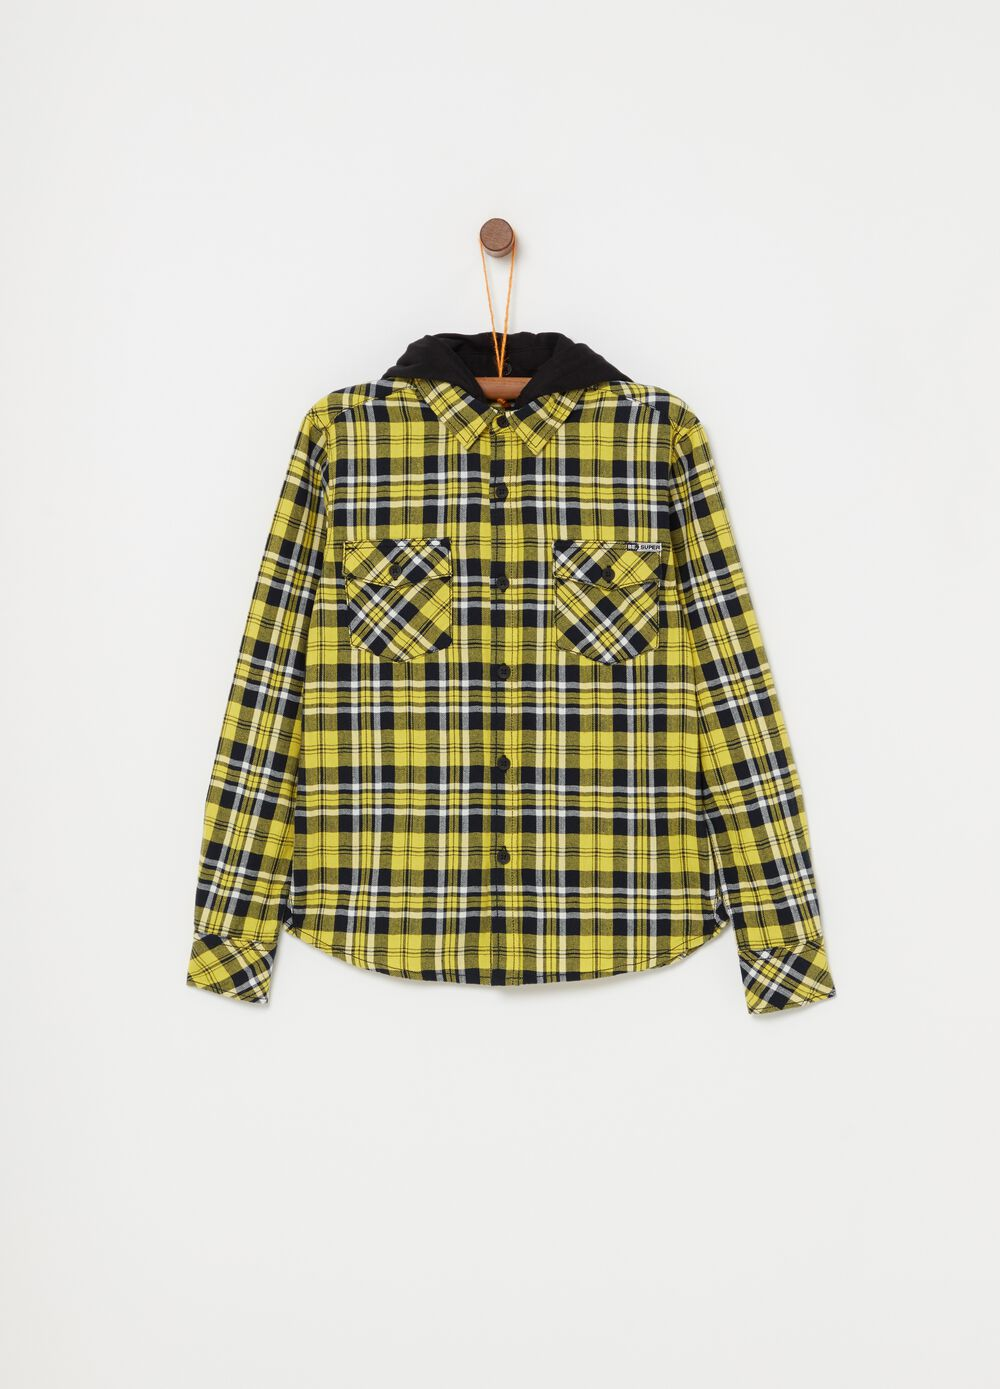 Shirt with hood, print and checks